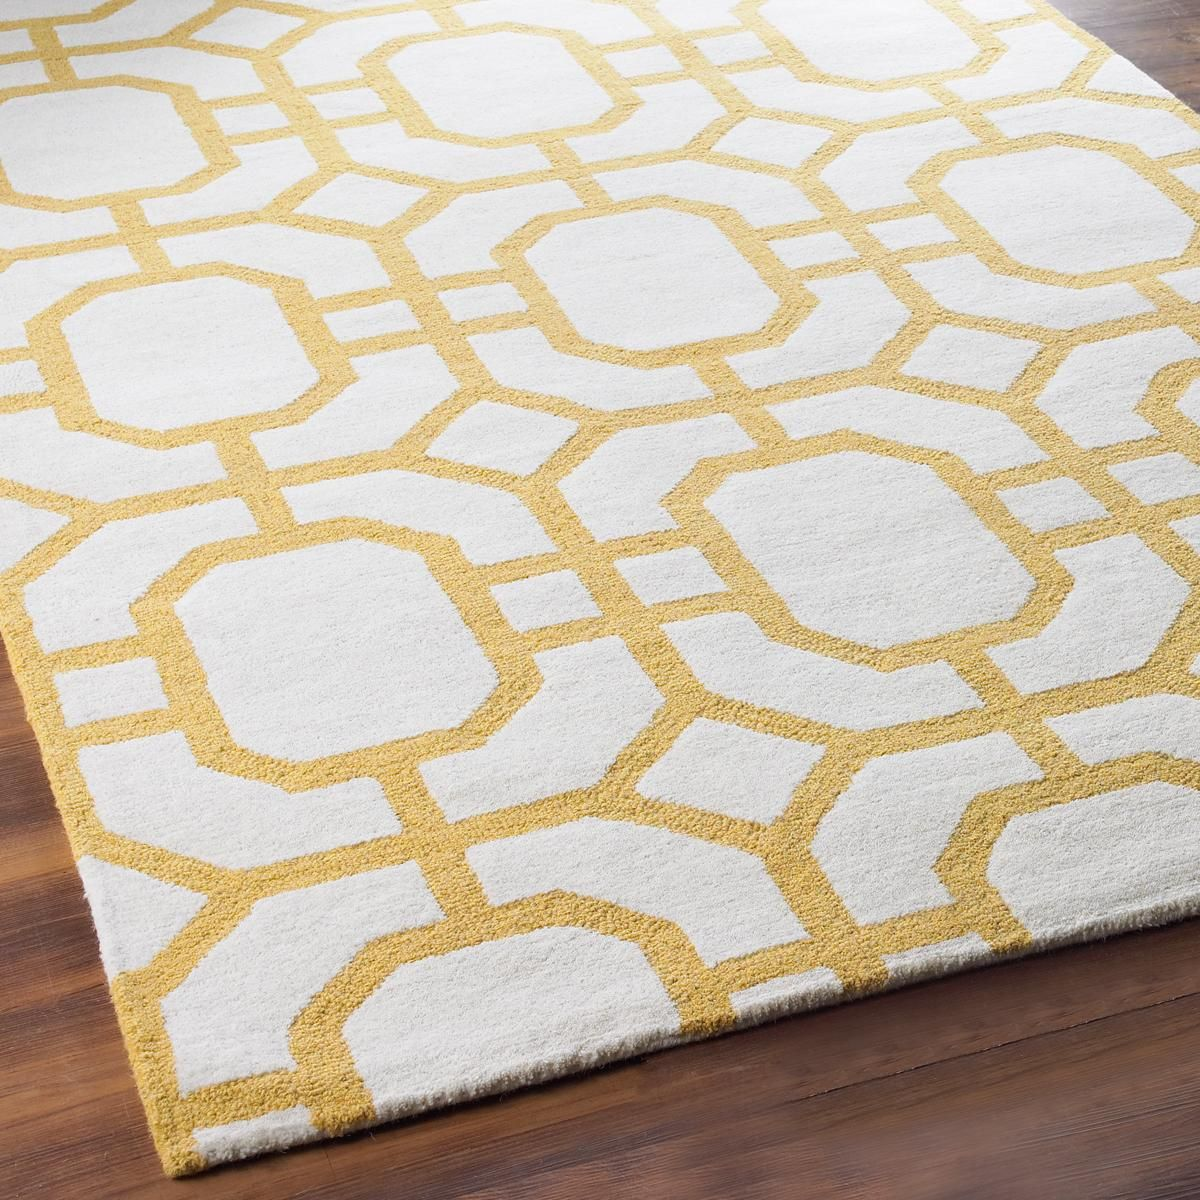 Octagon Trellis In Tufted Wool Shades Of Light Dining Room Rug Rug Options Townhome Decorating